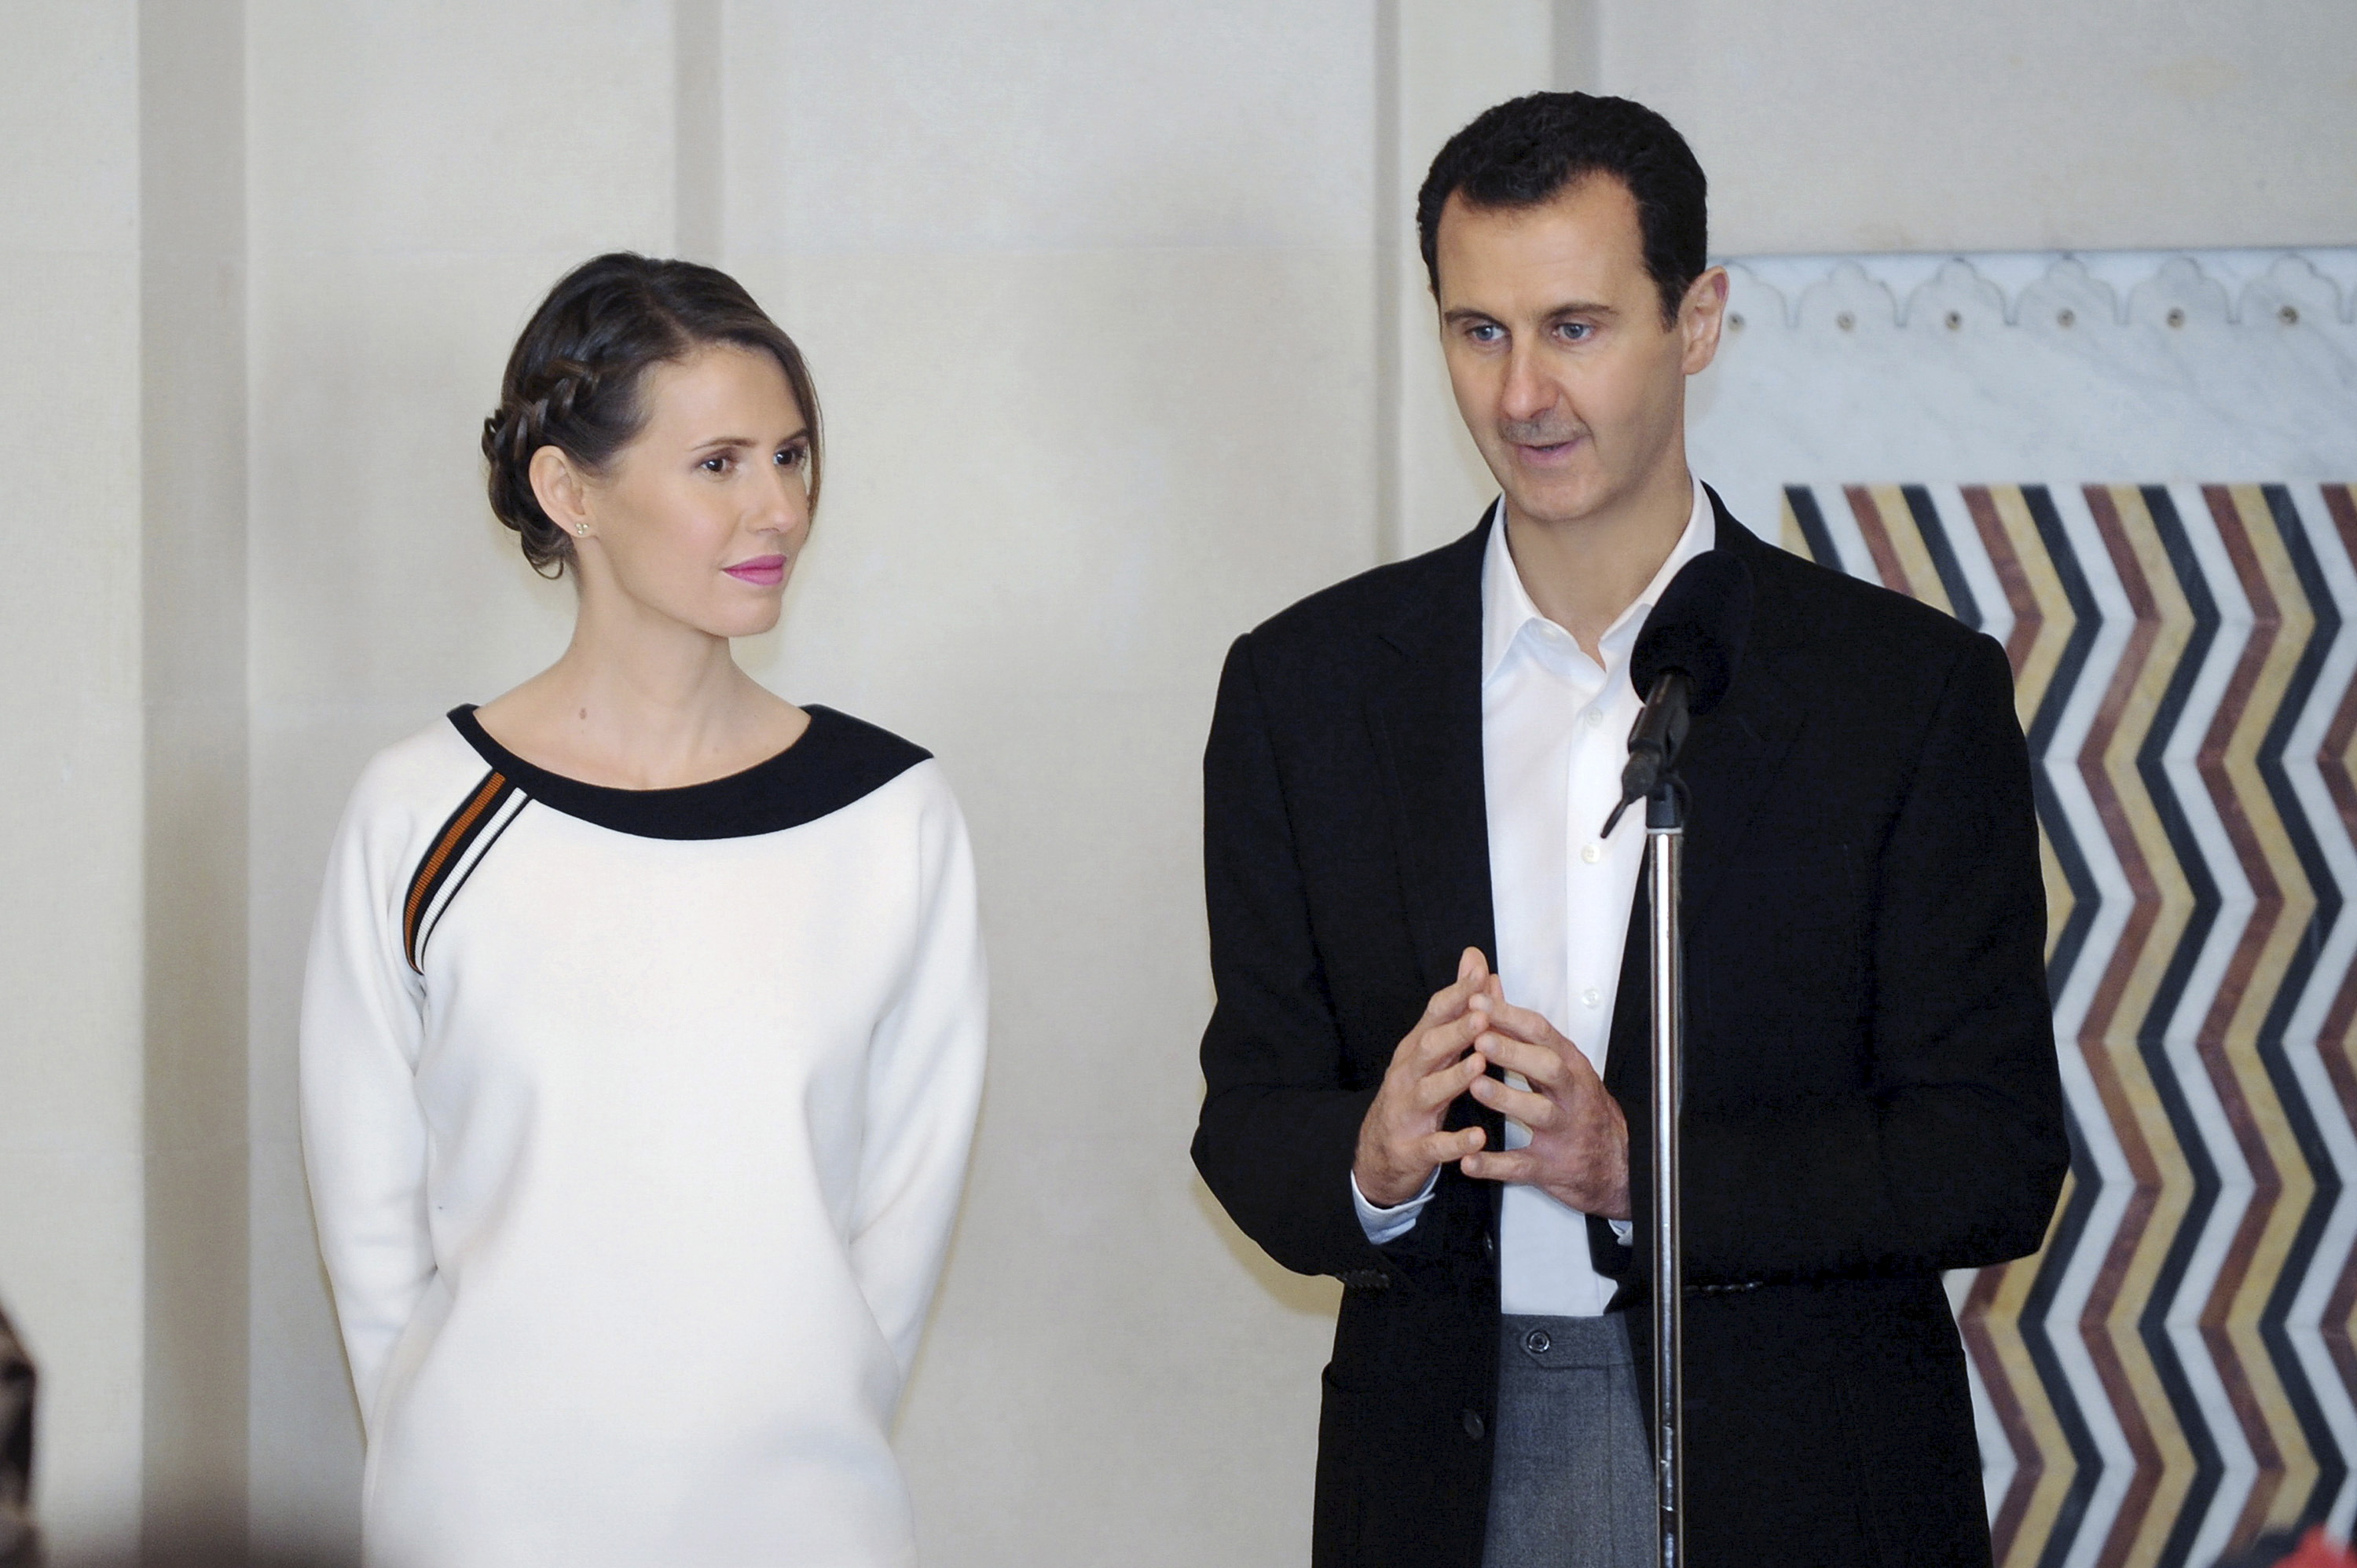 Syria's President Bashar Assad stands next to his wife Asma as he addresses injured soldiers and their mothers during a celebration marking Syrian Mother's Day in Damascus, in this handout picture provided by SANA on March 21, 2016